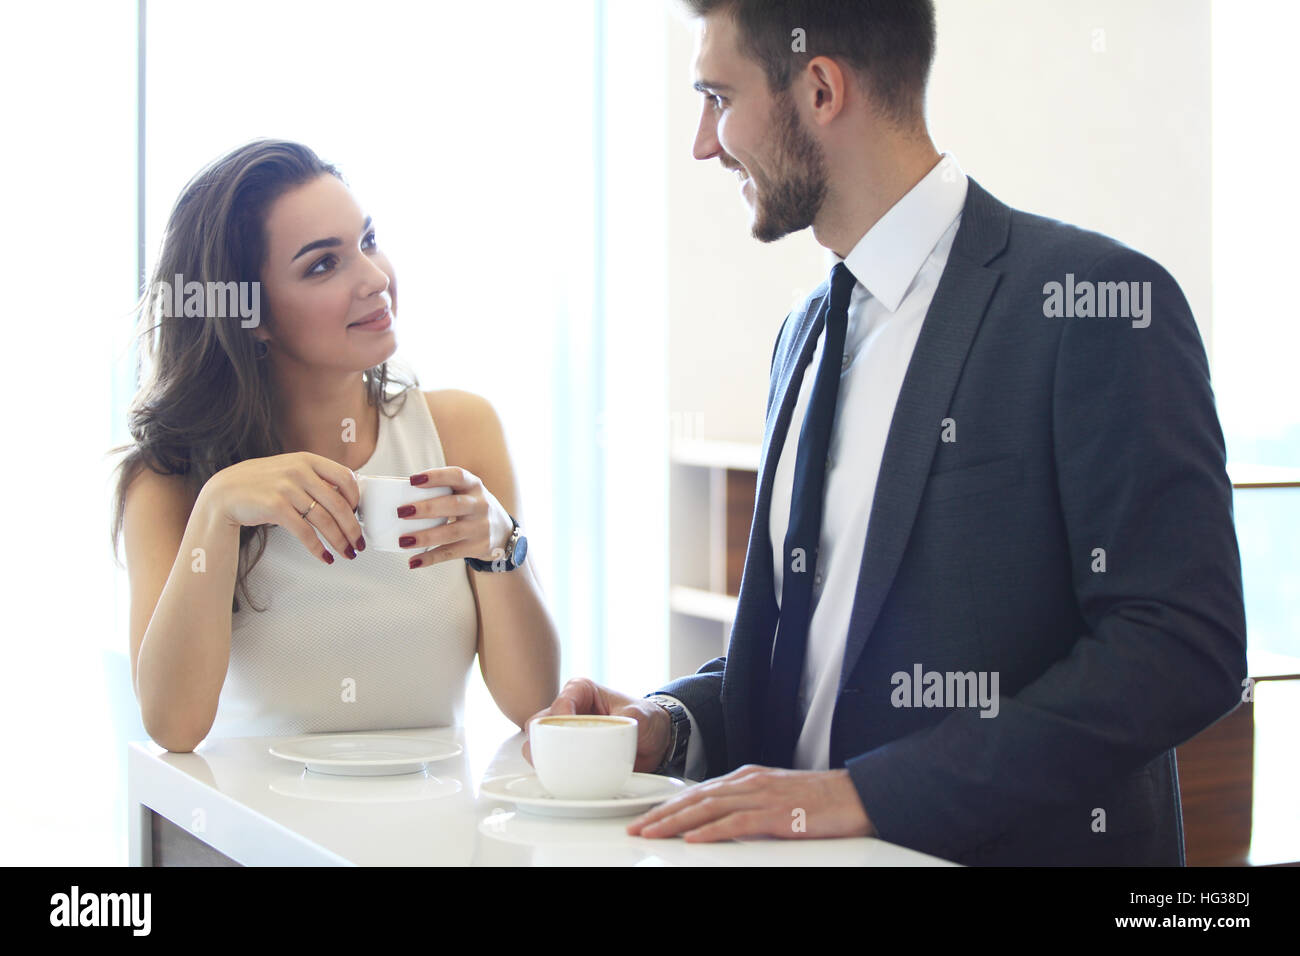 Business meeting in a cafe - Stock Image